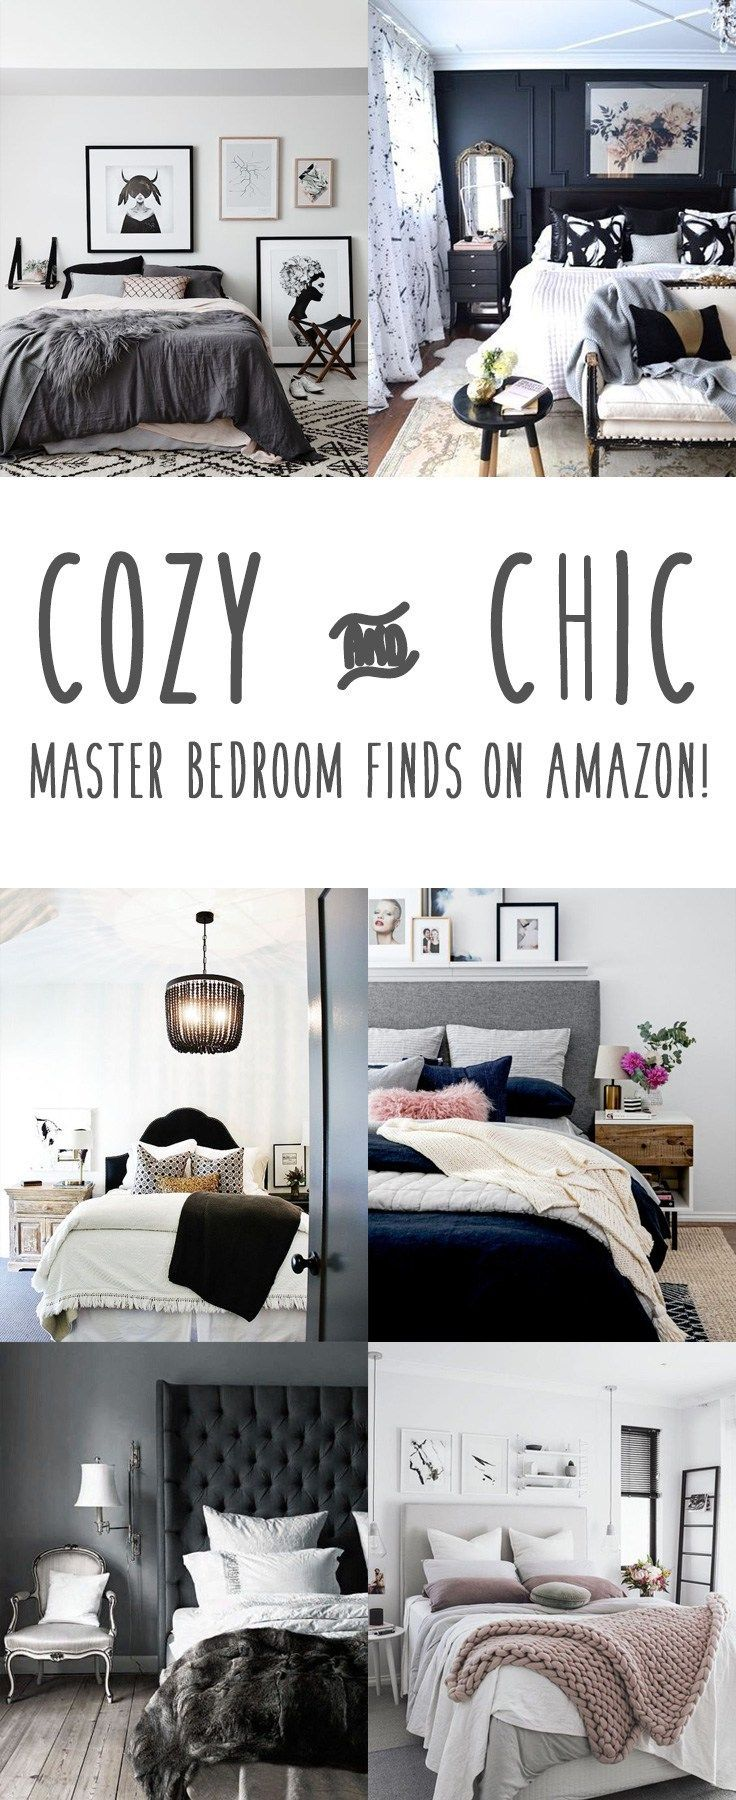 Master bedroom grey and white  Cozy u Chic Bedroom Inspiration from Amazon  Budgeting Cozy and